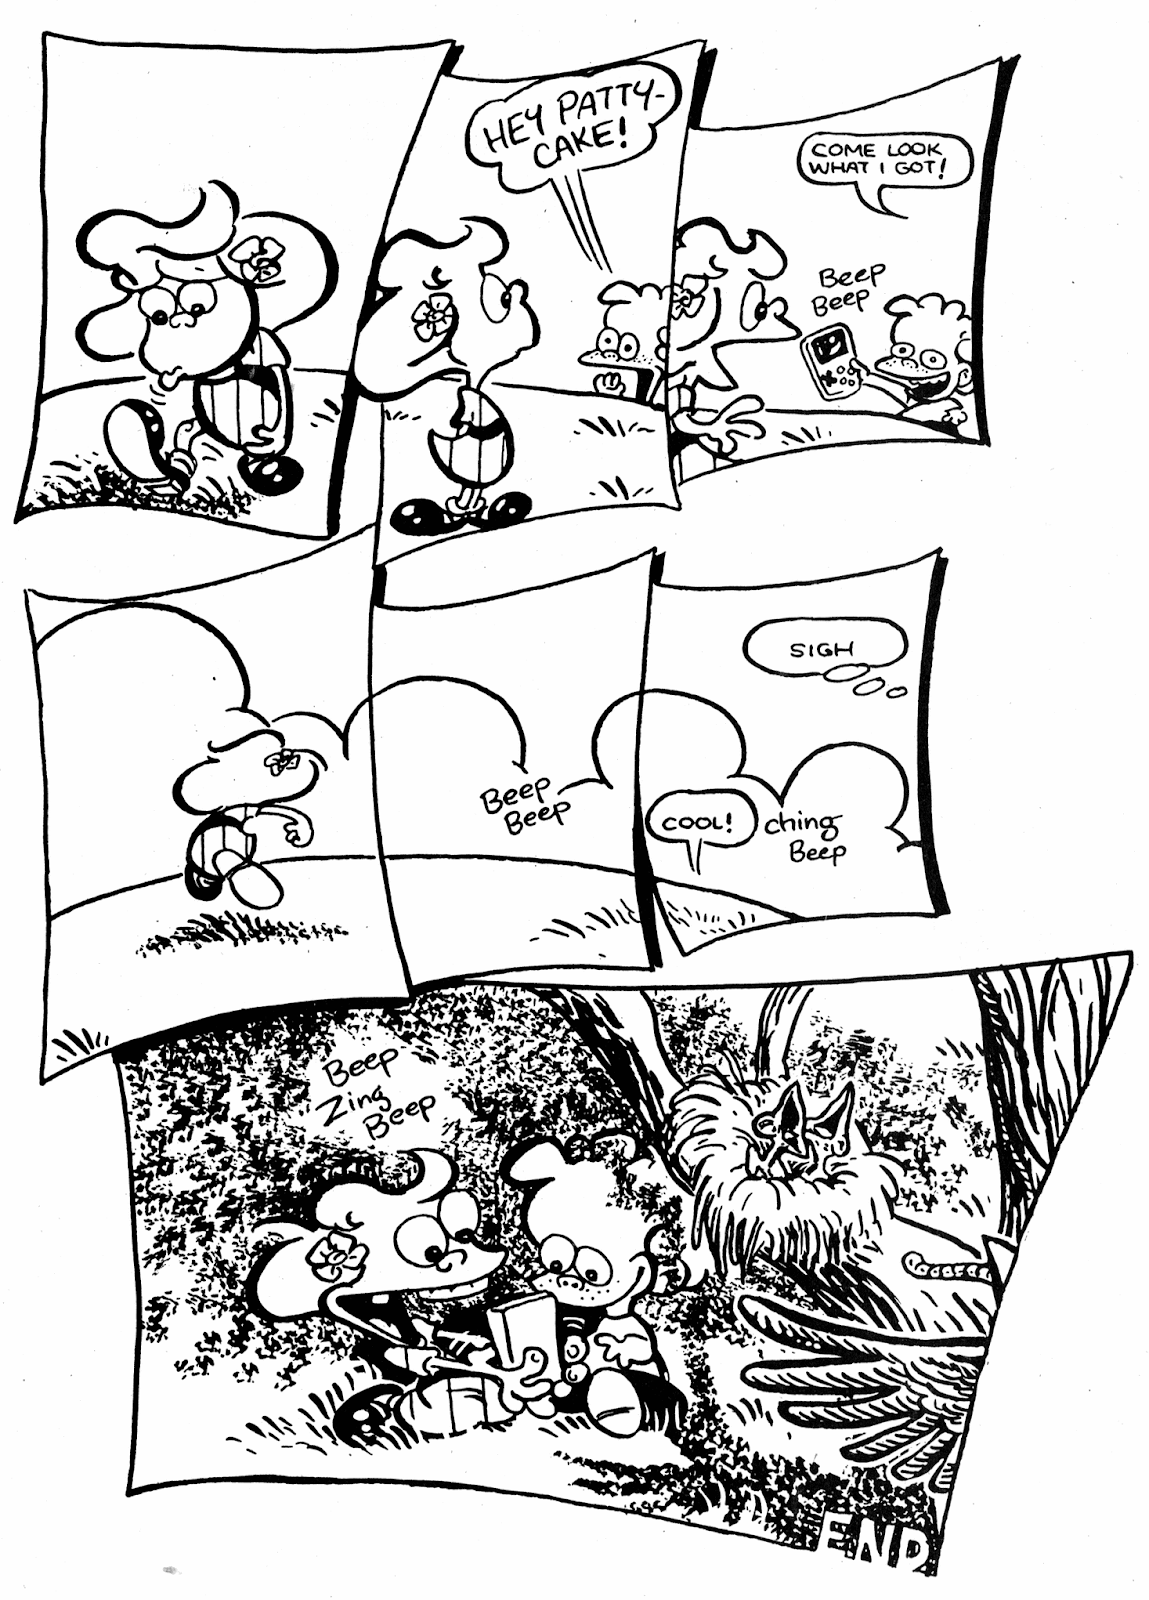 Read online Patty Cake comic -  Issue #4 - 30